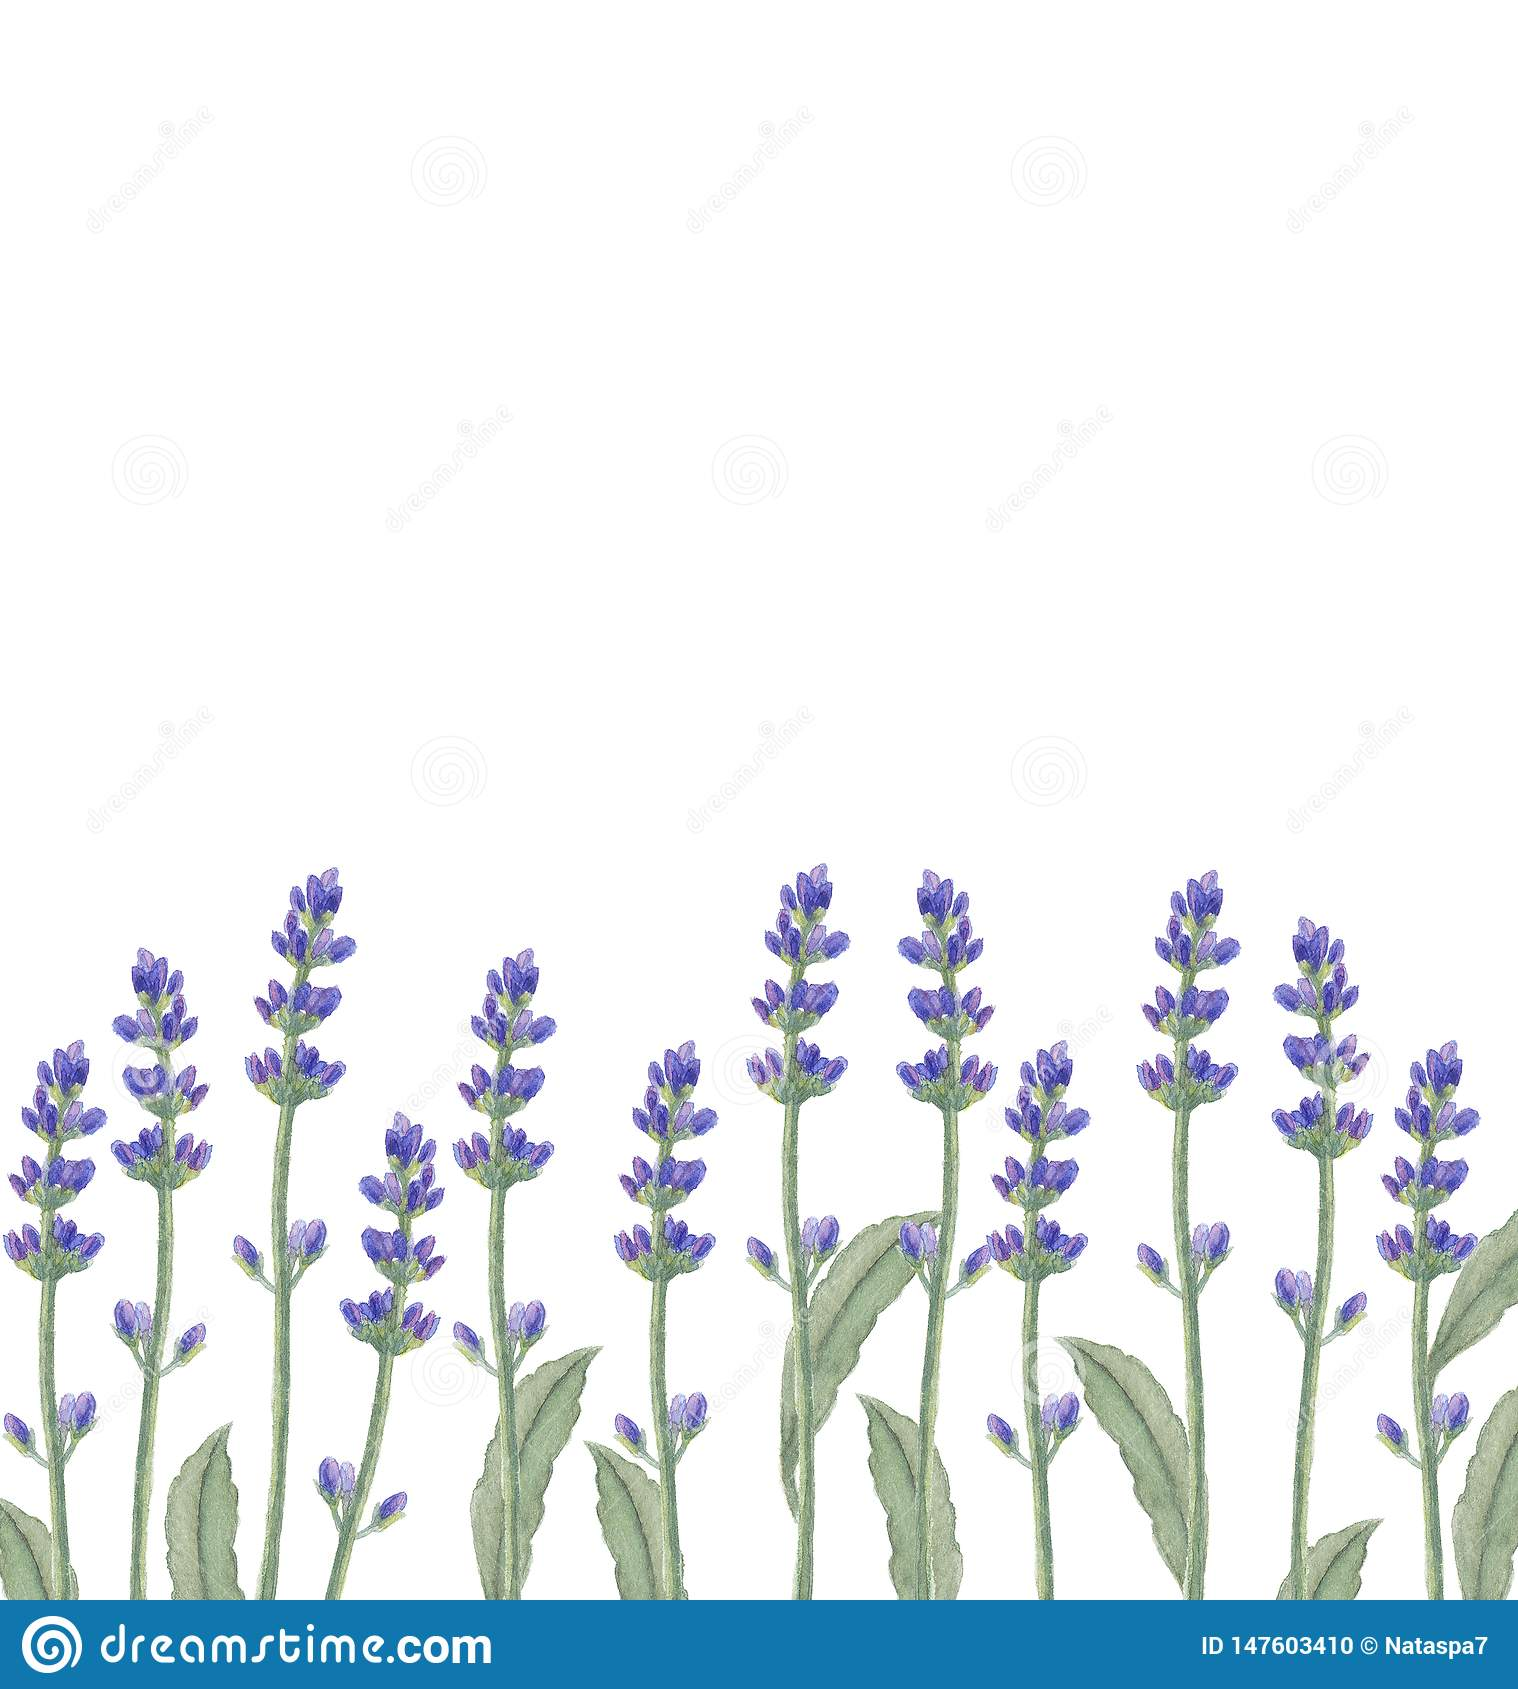 Watercolor illustration with lavender flowers.